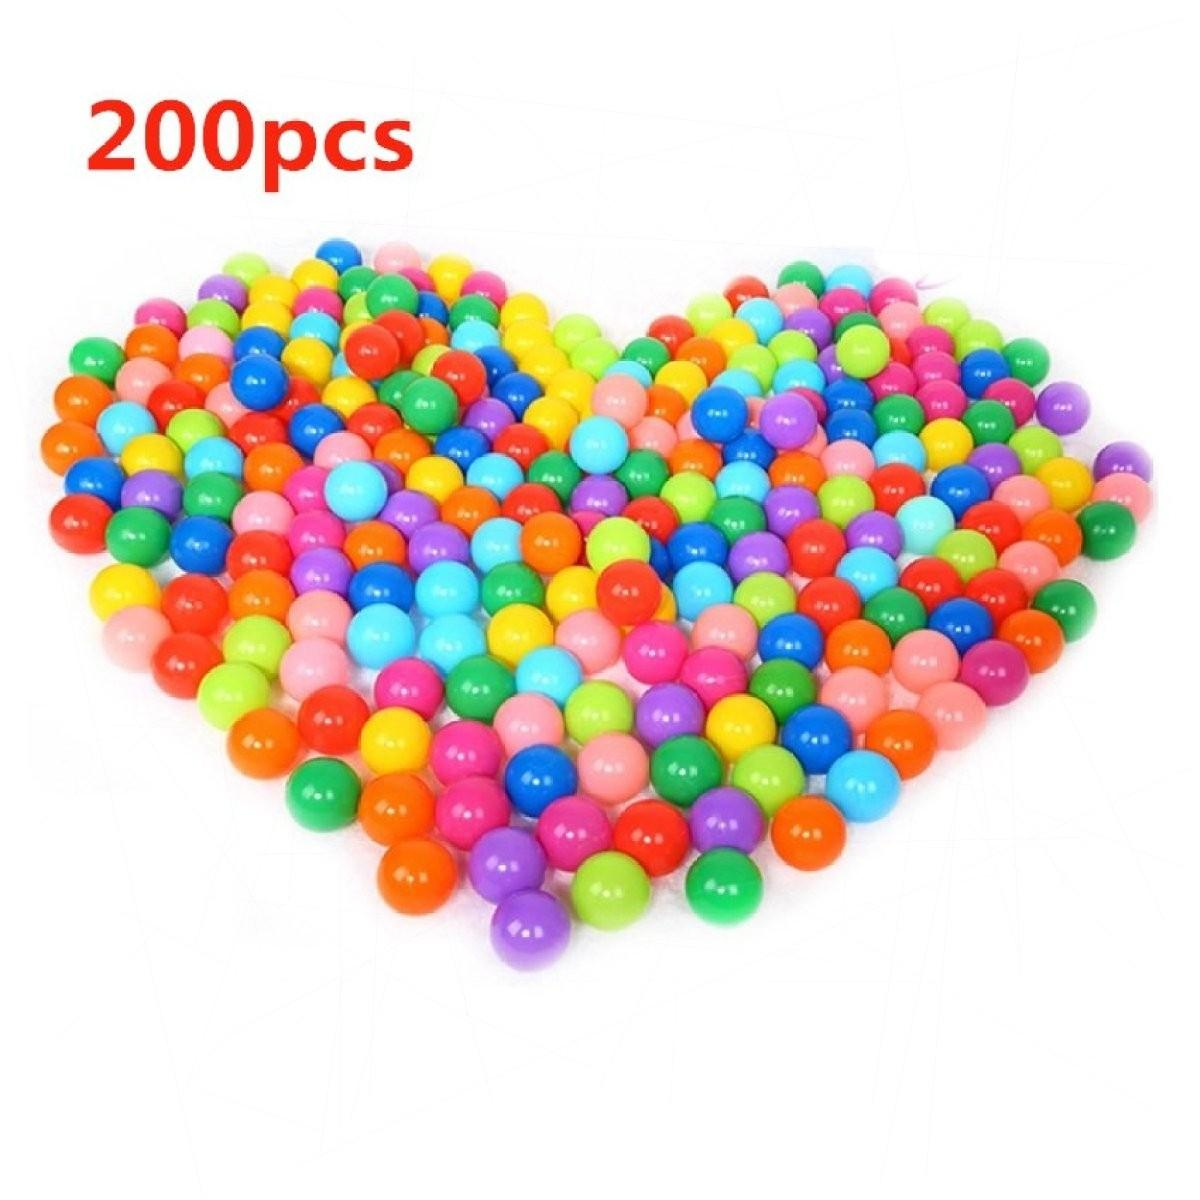 fe23e9ebffd5fe YBC 200pcs Ocean Ball Superior Toy Baby Kid Swim Fun Colorful Soft Plastic  Ball (MY